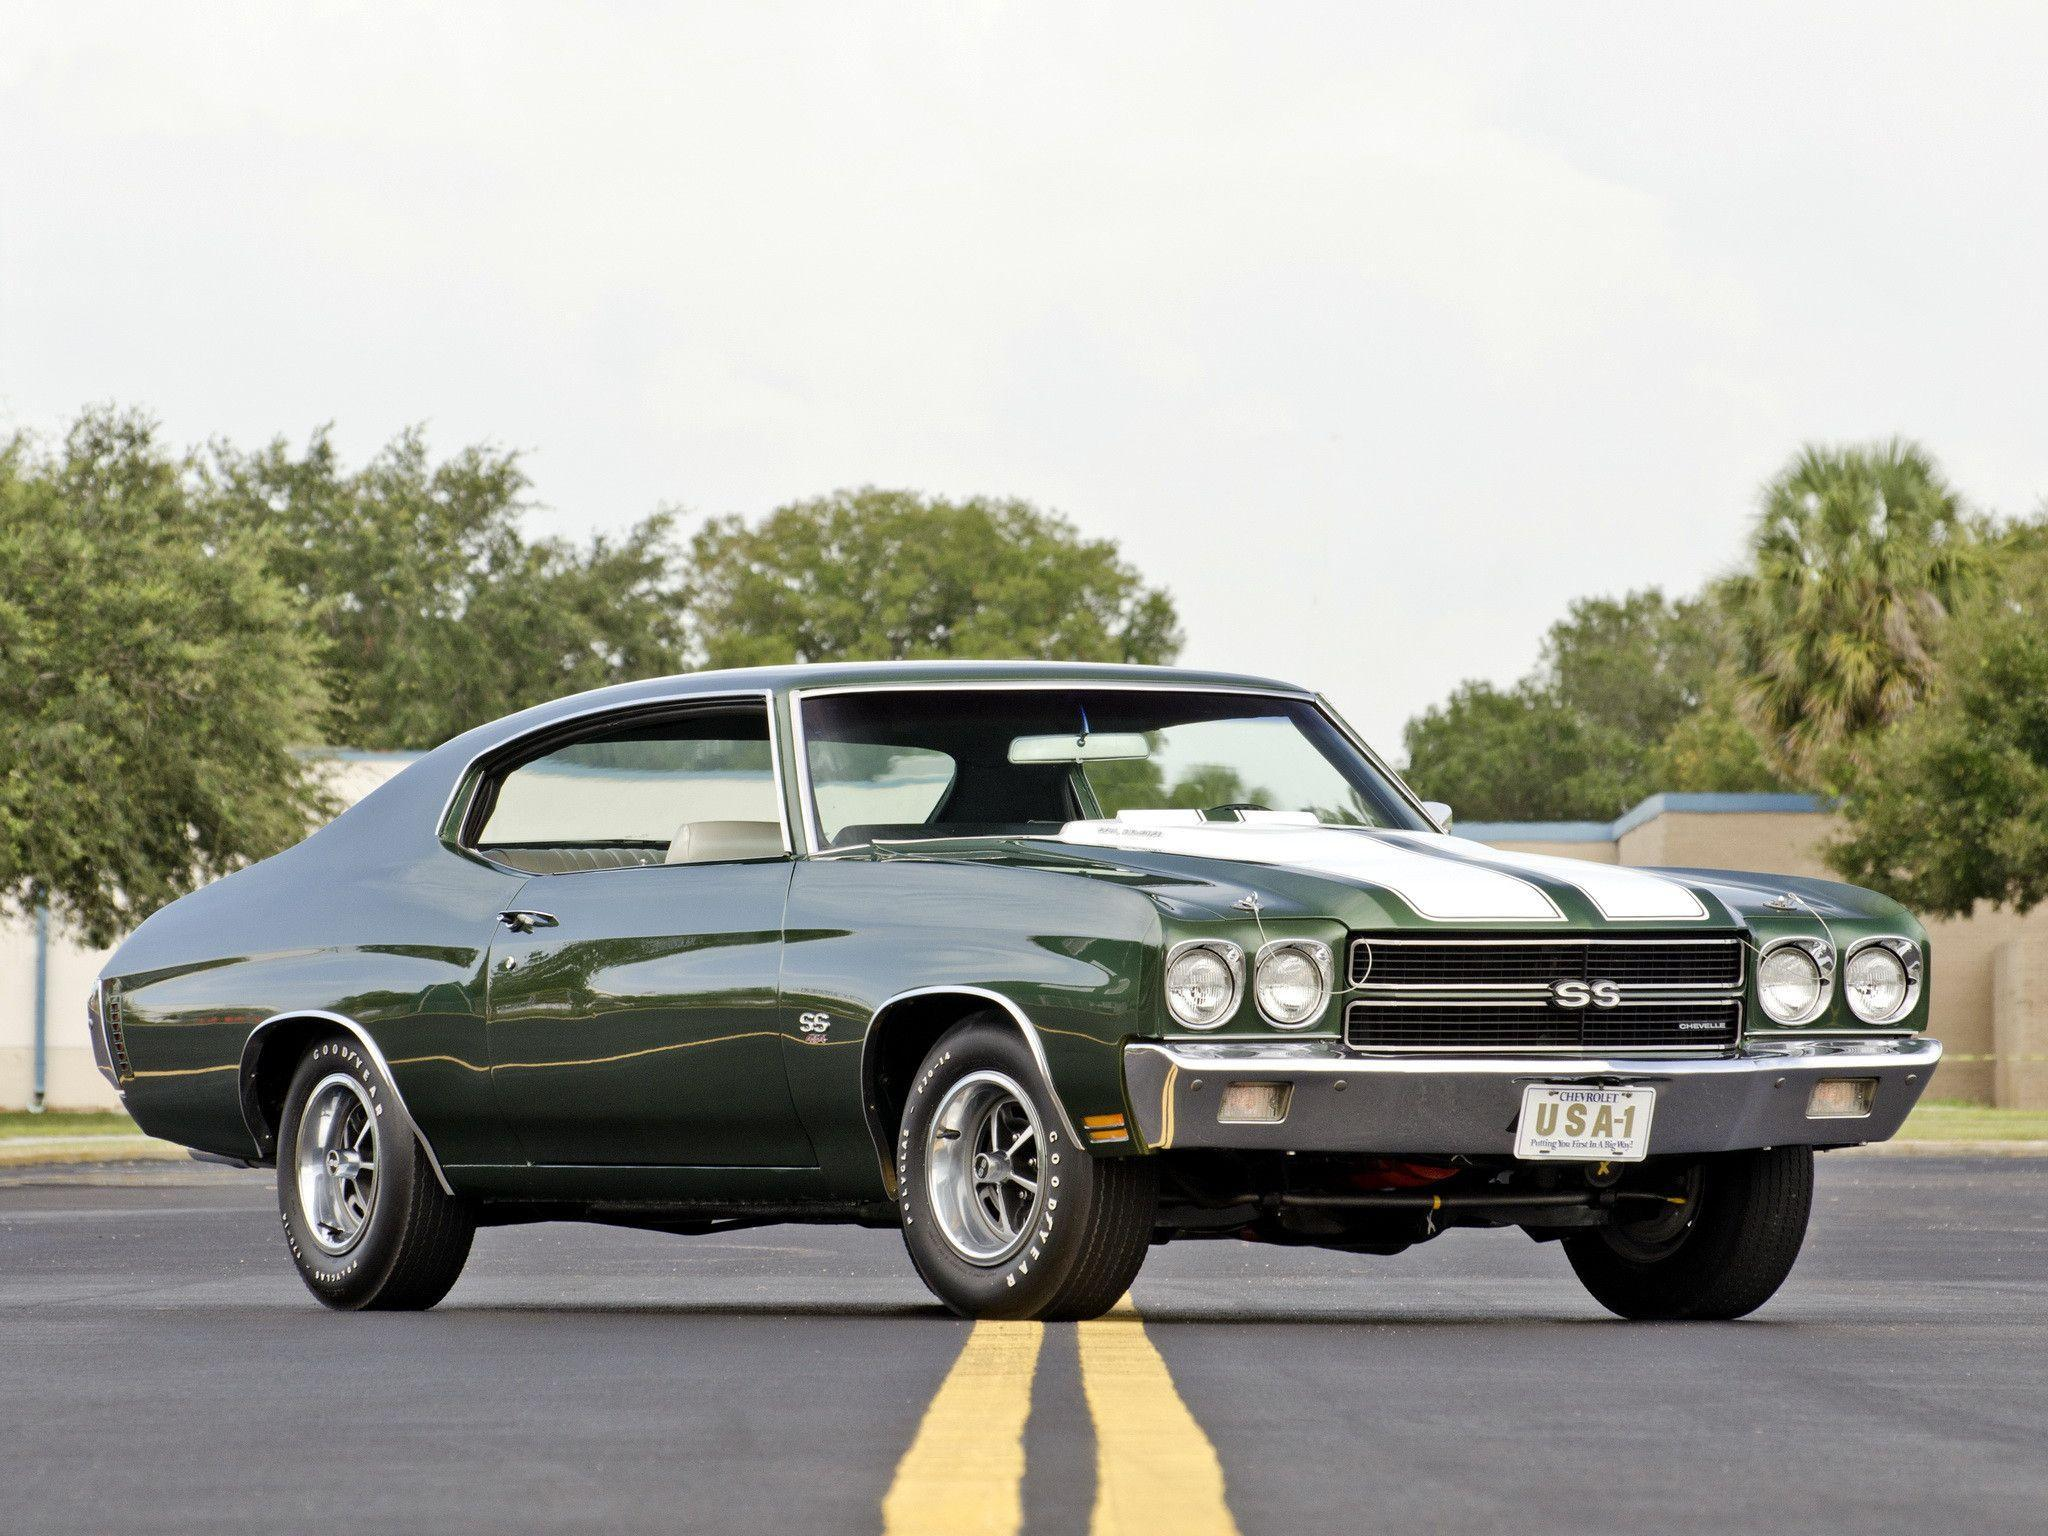 Chevelle SS Wallpapers - Wallpaper Cave